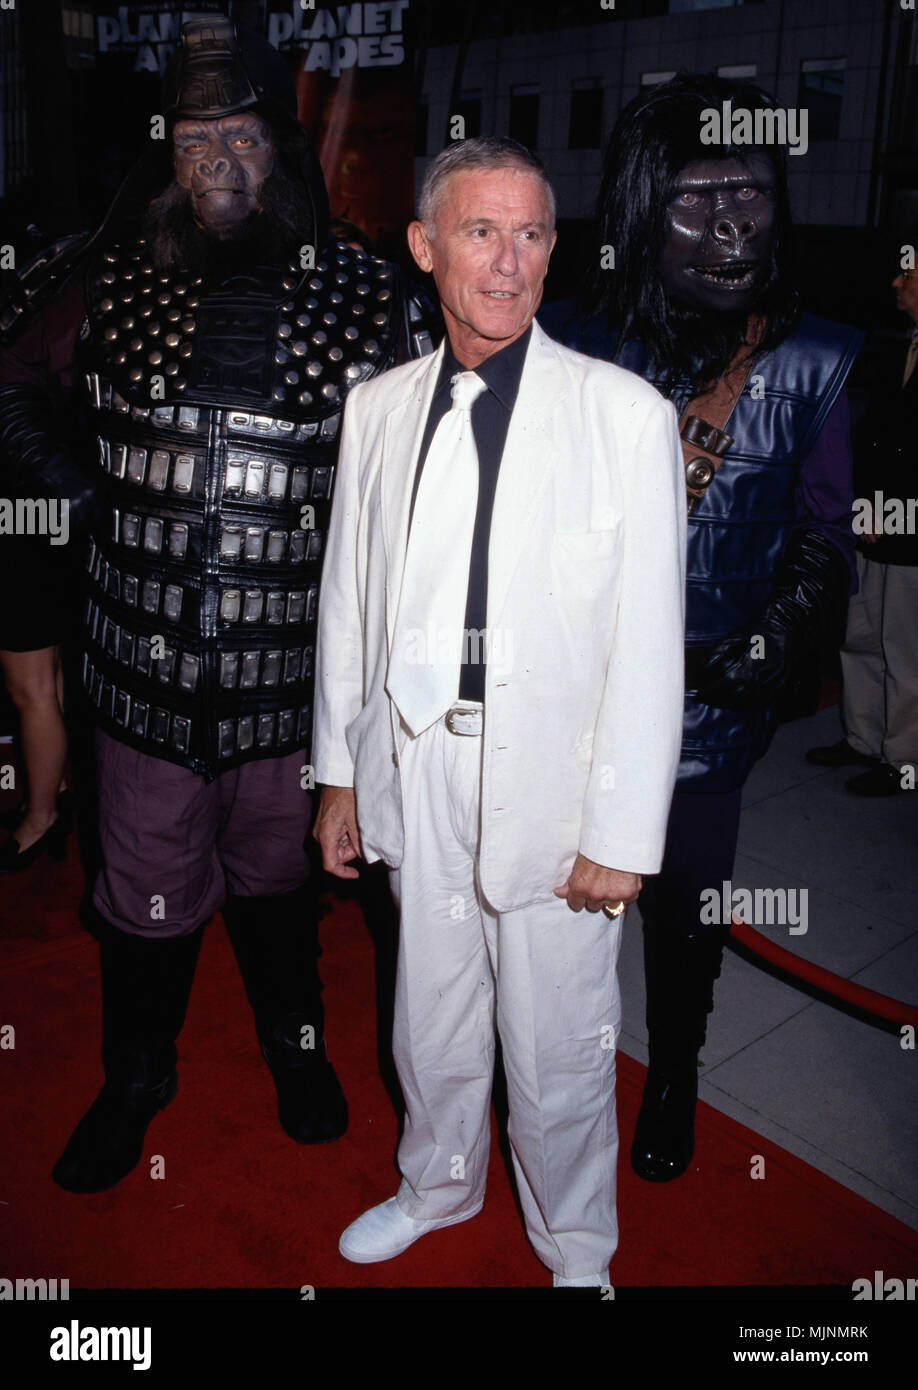 Roddy Mcdowell --- ' Tsuni / USA 'Roddy Mcdowell  Roddy Mcdowell  Celebrities fashion / Full length from the Red Carpet-1994-2000, one person, Vertical, Best of, Hollywood Life, one person, Vertical, Best of, Hollywood Life, Event in Hollywood Life - California,  Red Carpet Event, Vertical, USA, Film Industry, Celebrities,  Photography, Bestof, Arts Culture and Entertainment, , , Topix - Stock Image